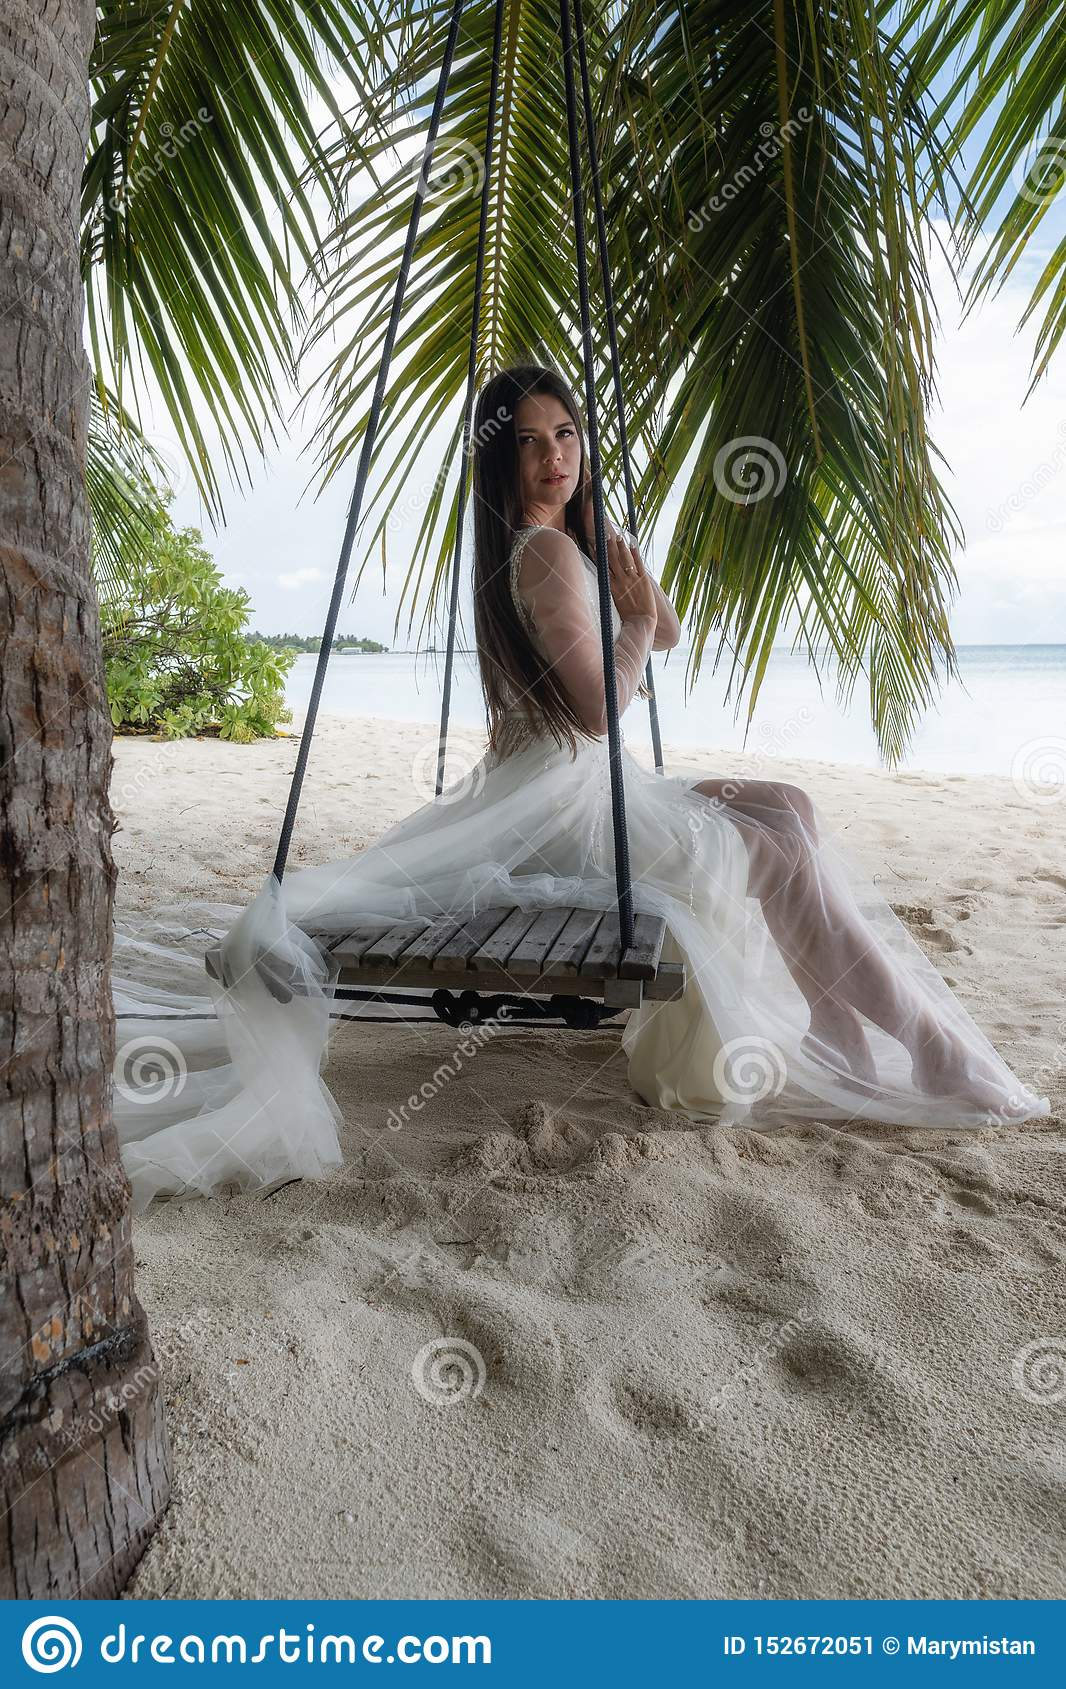 A bride in a white dress is riding on a swing under a big palm tree